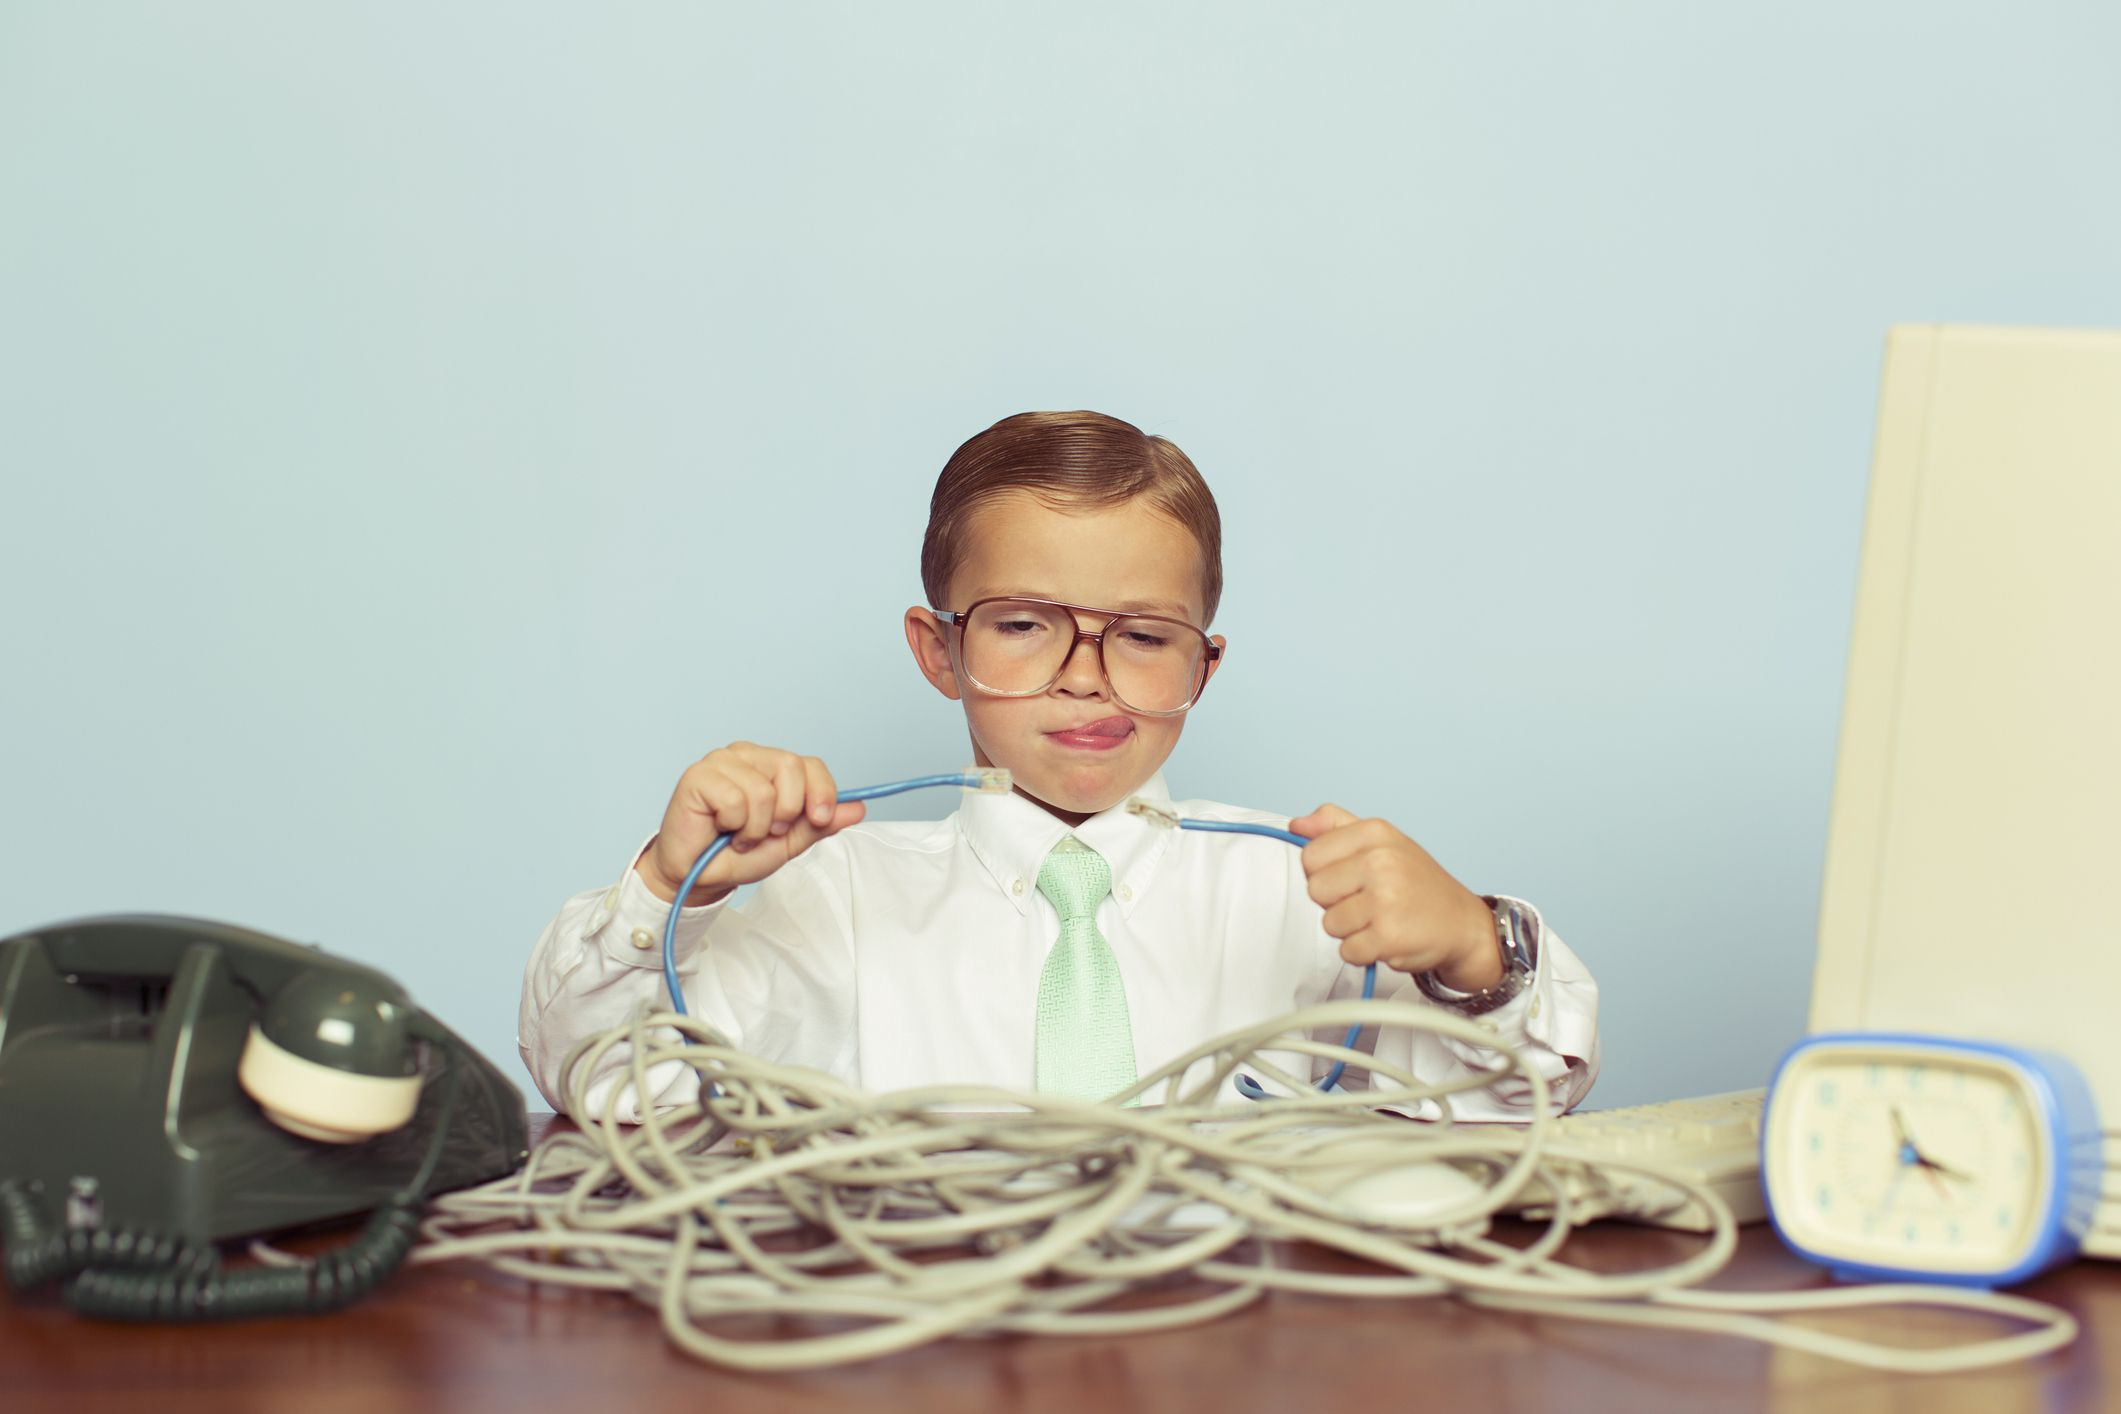 kid working with a large pile of tangled internet cables on his desk